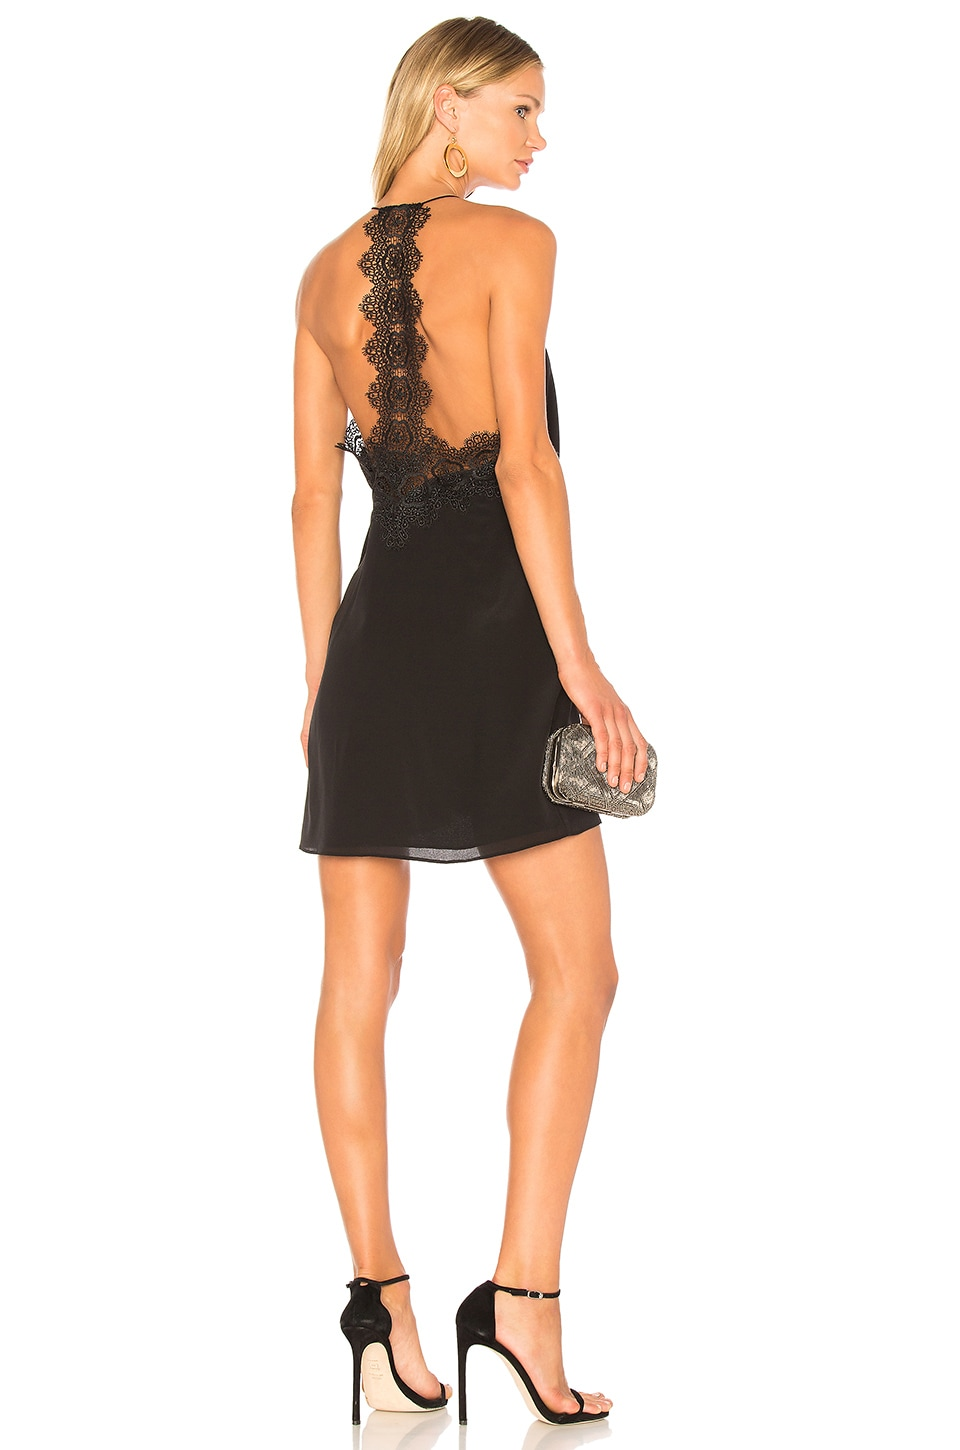 The Ainsley Dress by CAMI NYC